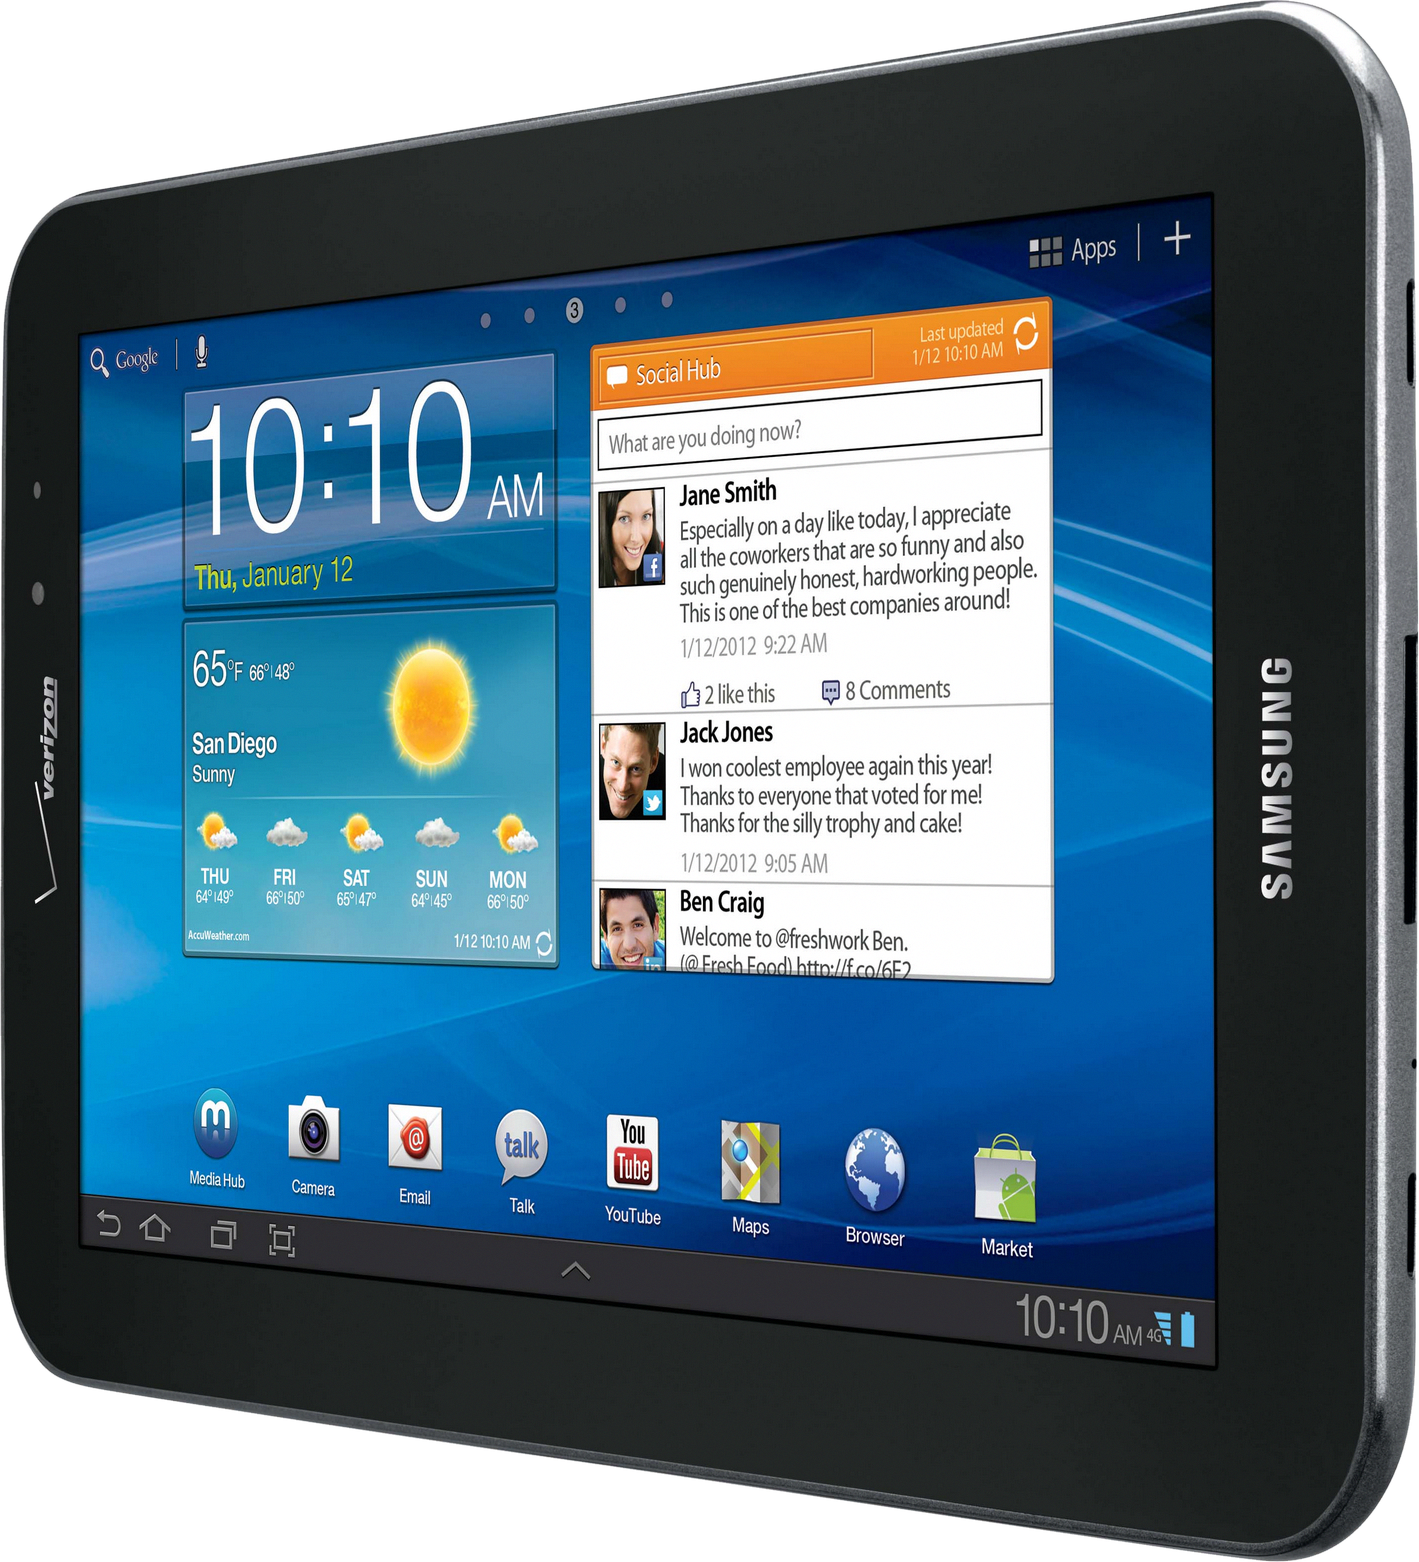 Pin by Technx on Technology Tablet, Android tablets